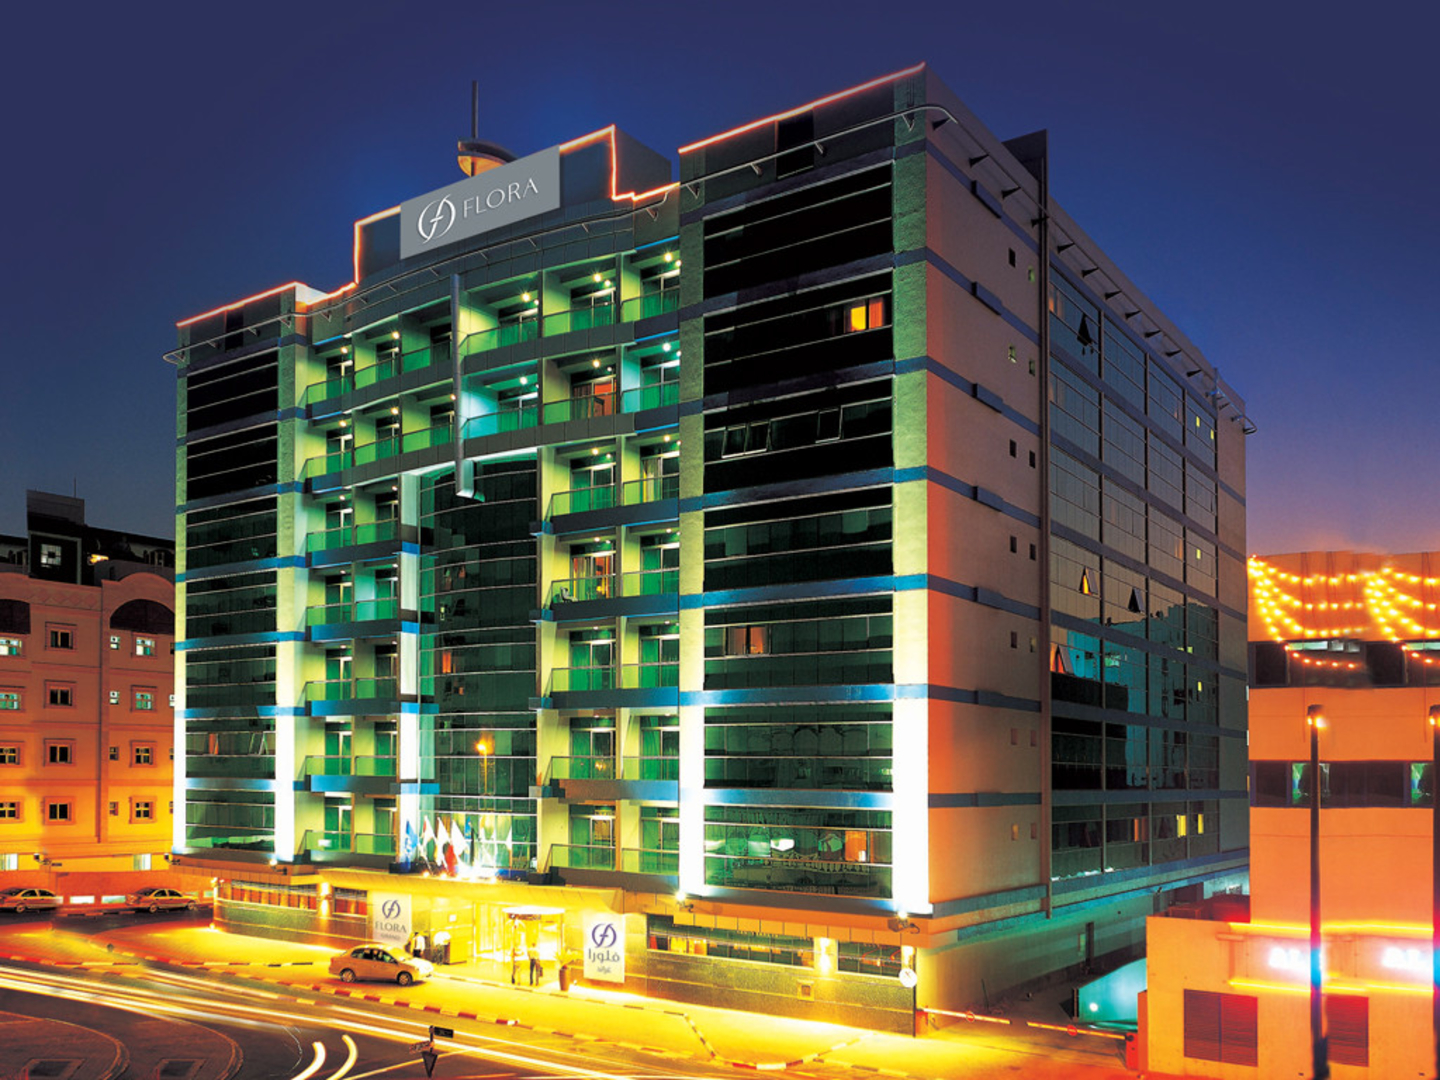 HiDubai-business-flora-grand-hotel-hotels-tourism-hotels-resorts-al-muraqqabat-dubai-2